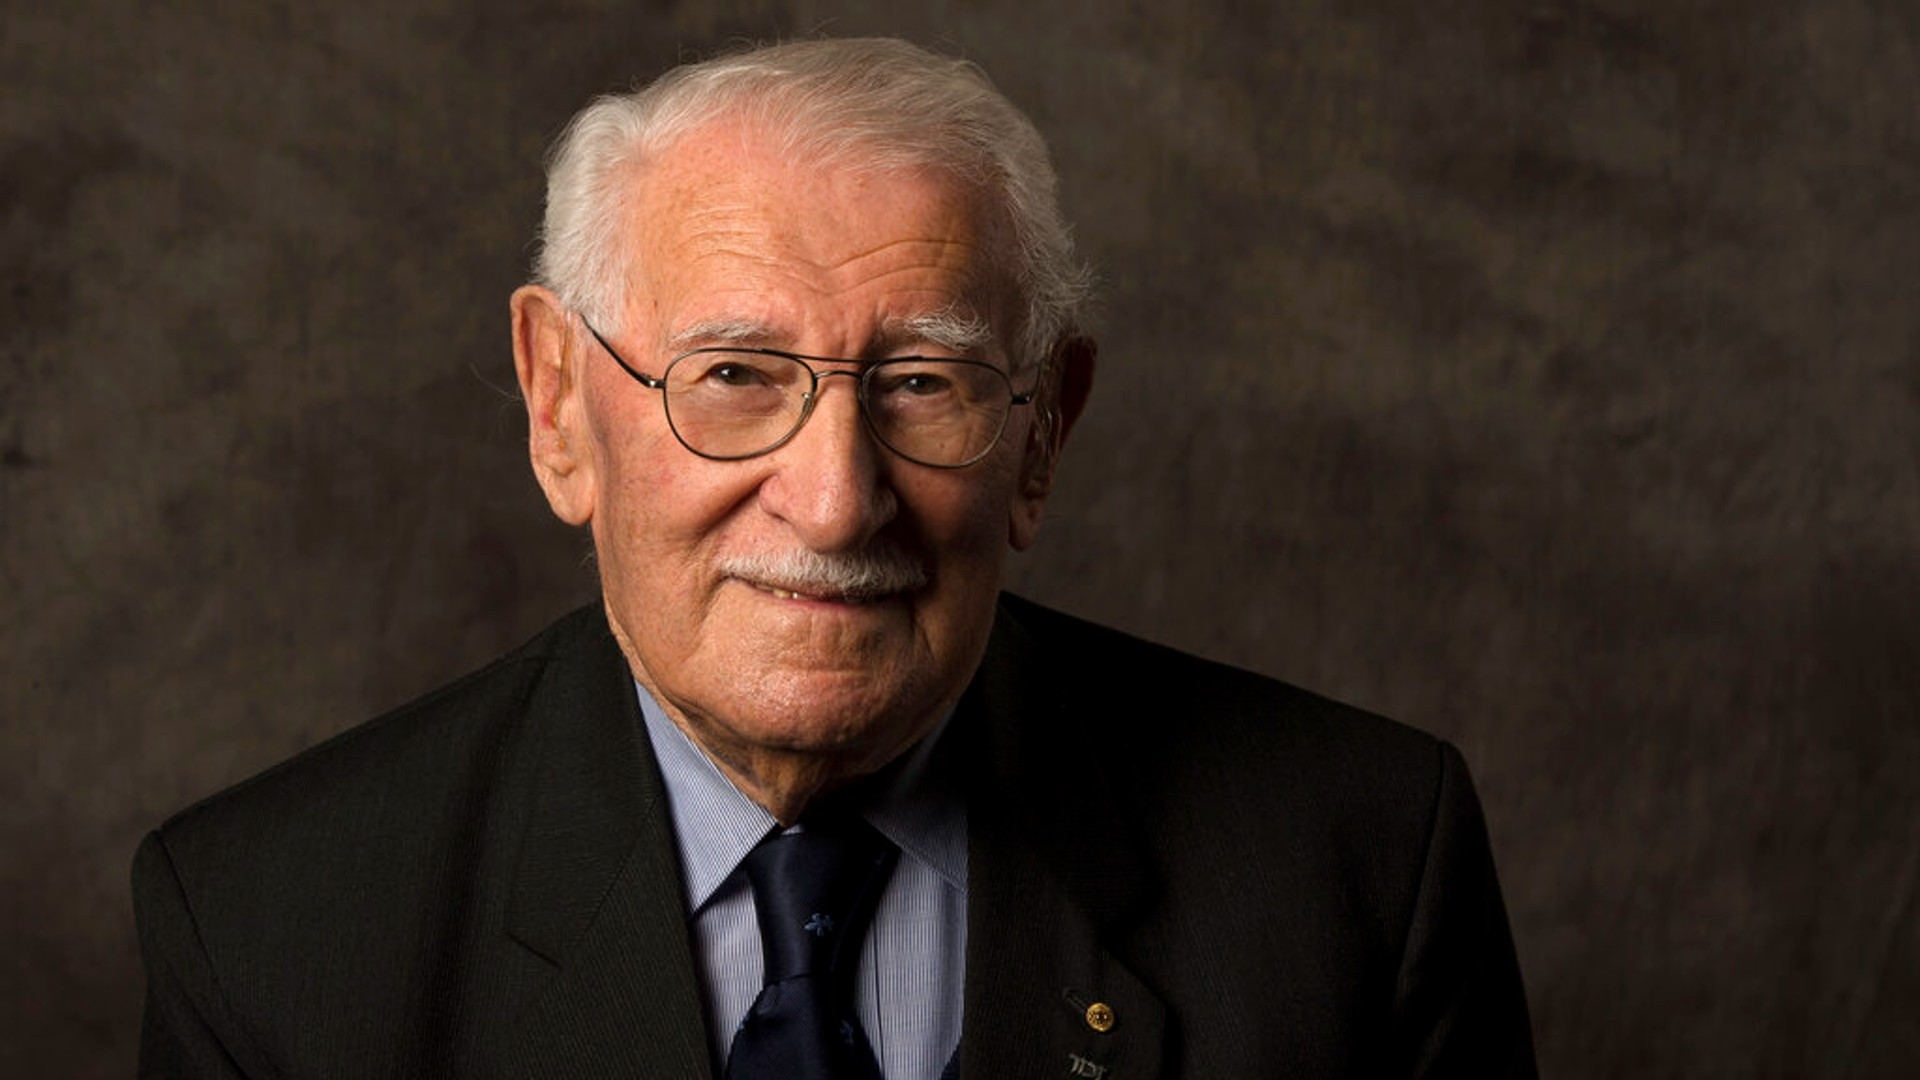 In this undated photo provided by the Sydney Jewish Museum, Holocaust survivor Eddie Jaku poses for a photograph in Sydney, Australia. (Sydney Jewish Museum via AP)